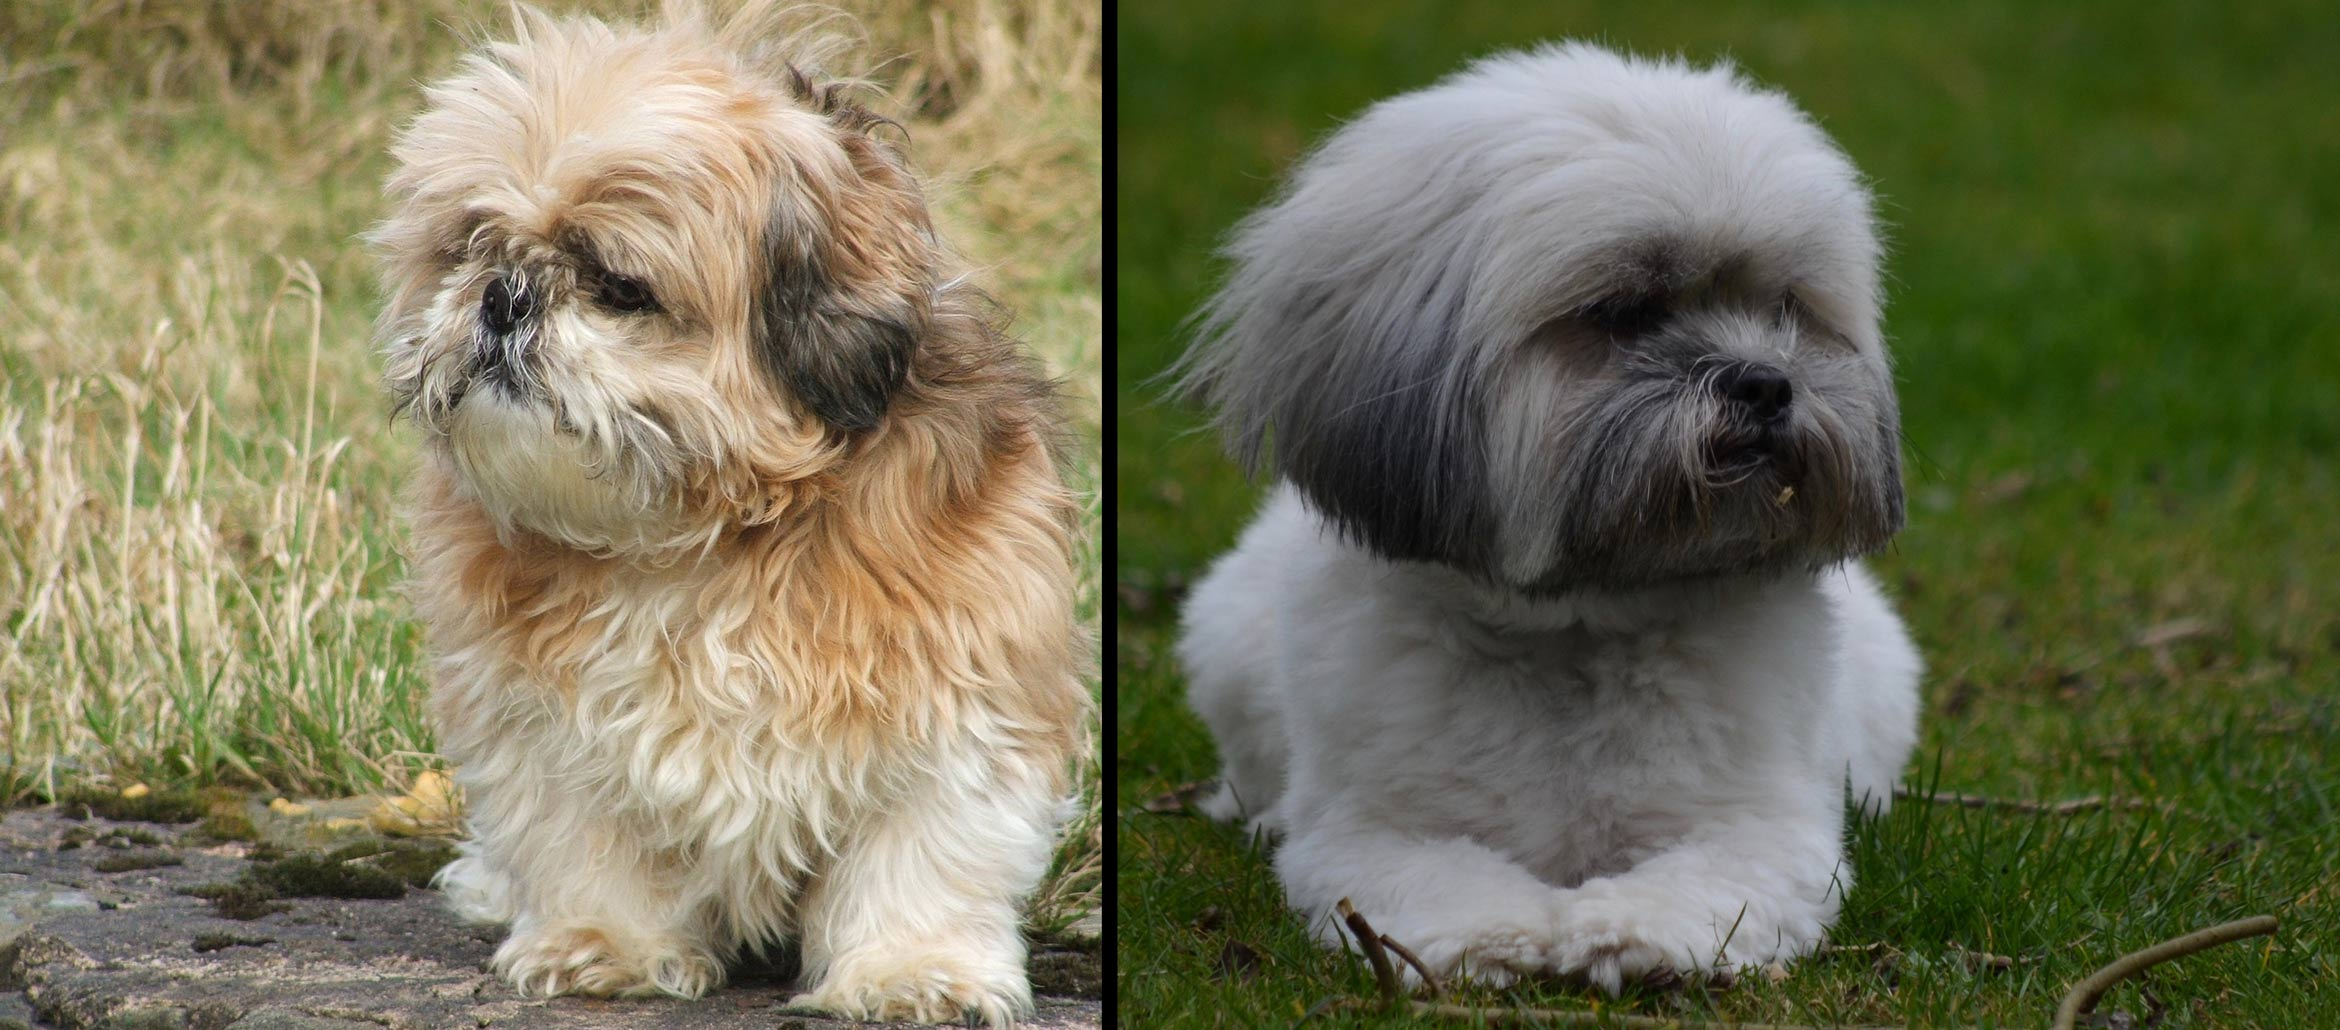 shih tzu lhaso apso differences between a lhasa apso and shih tzu lhasalife 2196